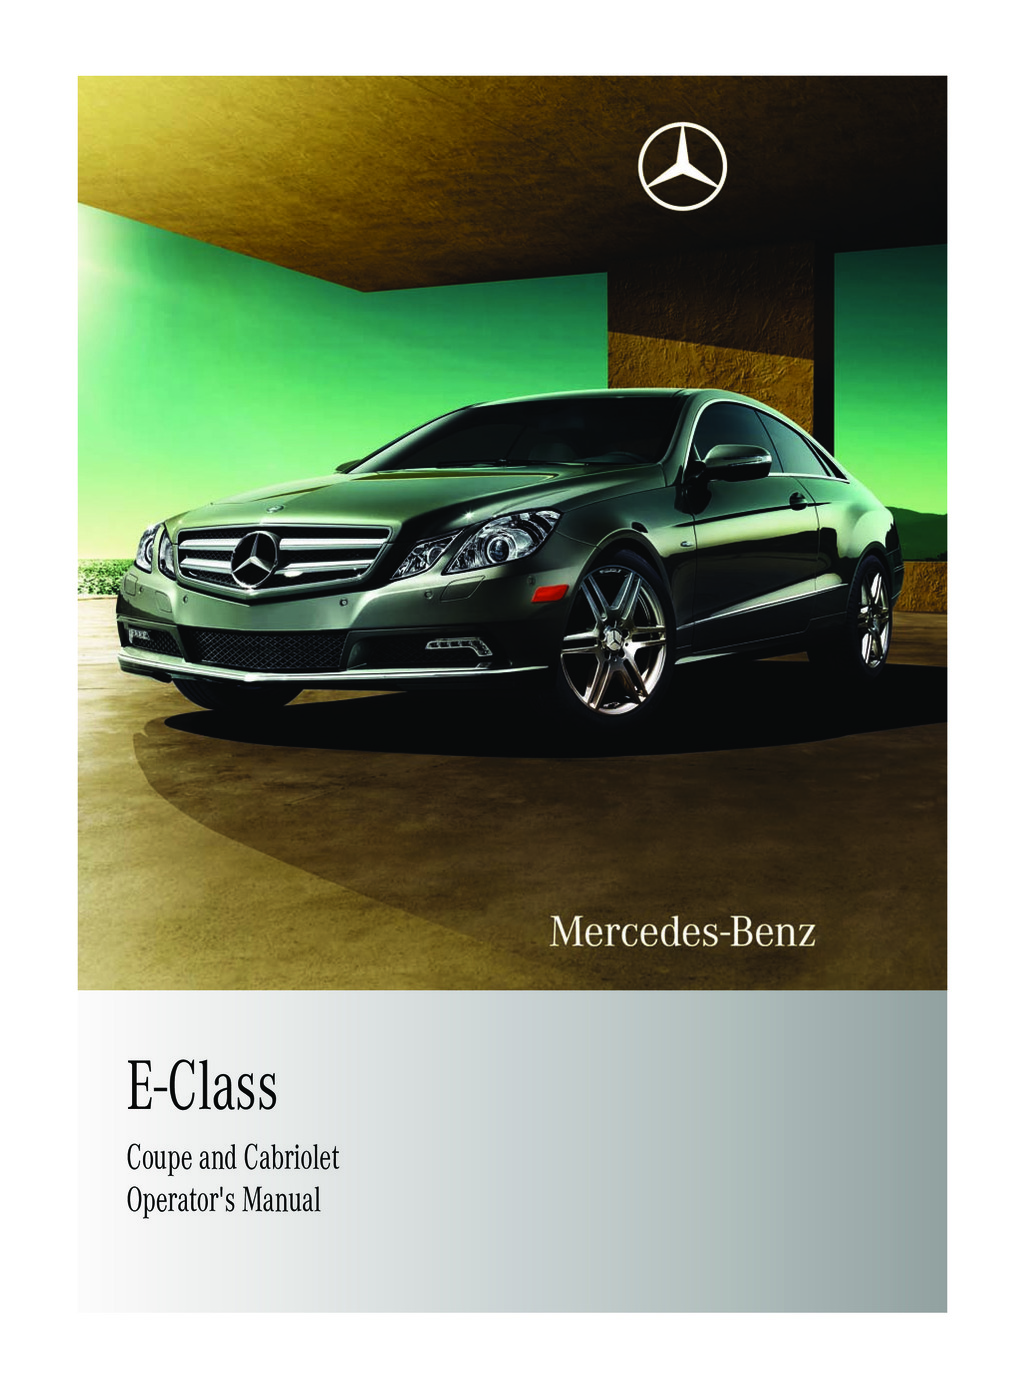 2011 Mercedes-Benz E Class Coupe owners manual